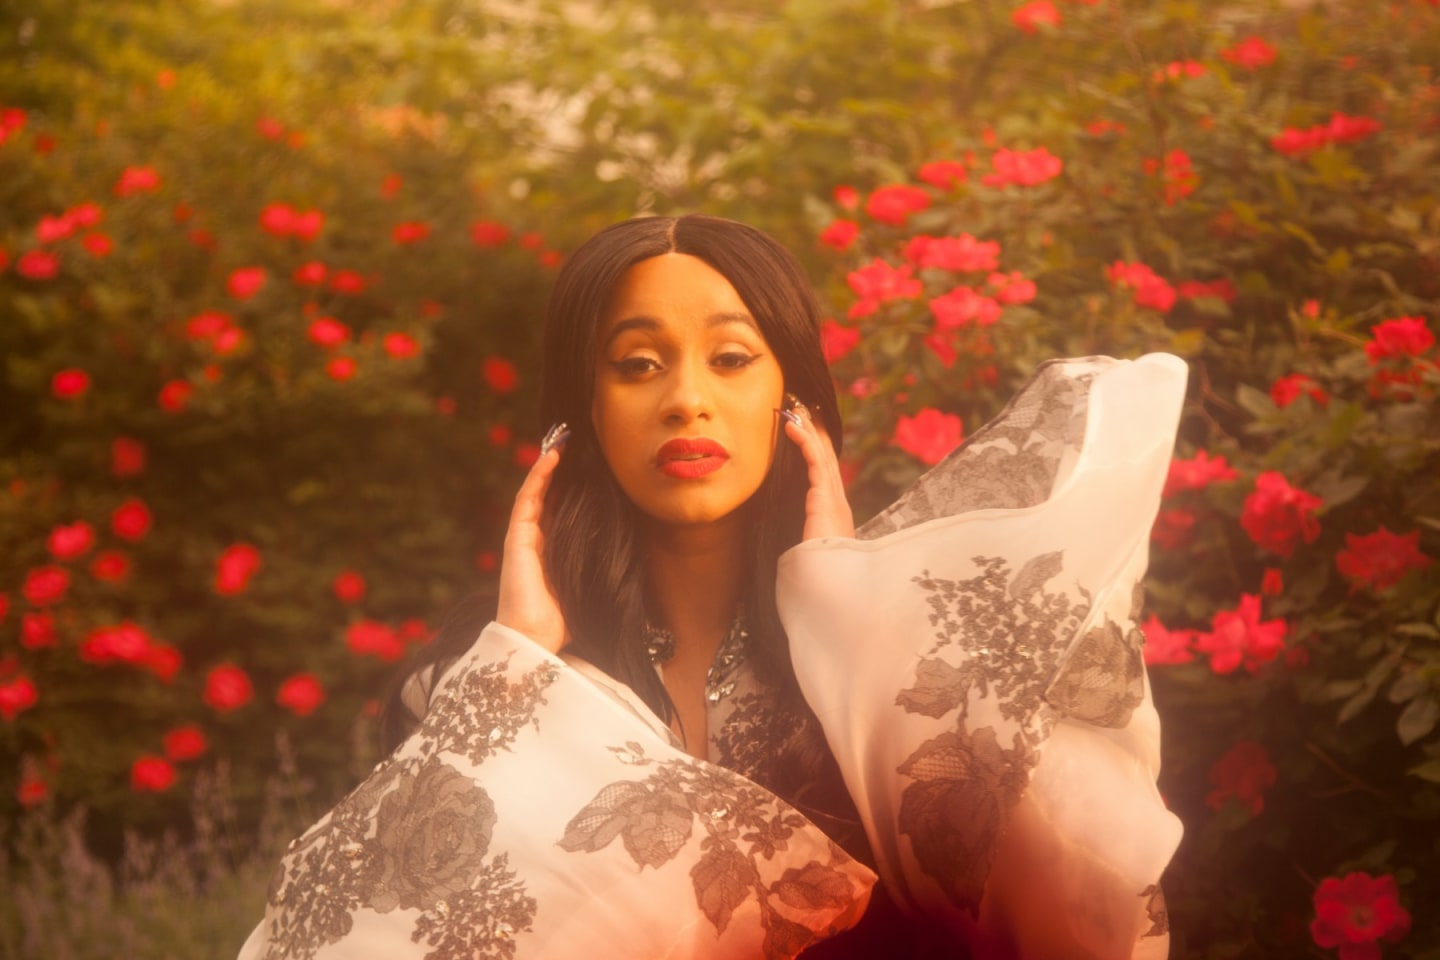 Cardi B Has Flaws, But We All Do